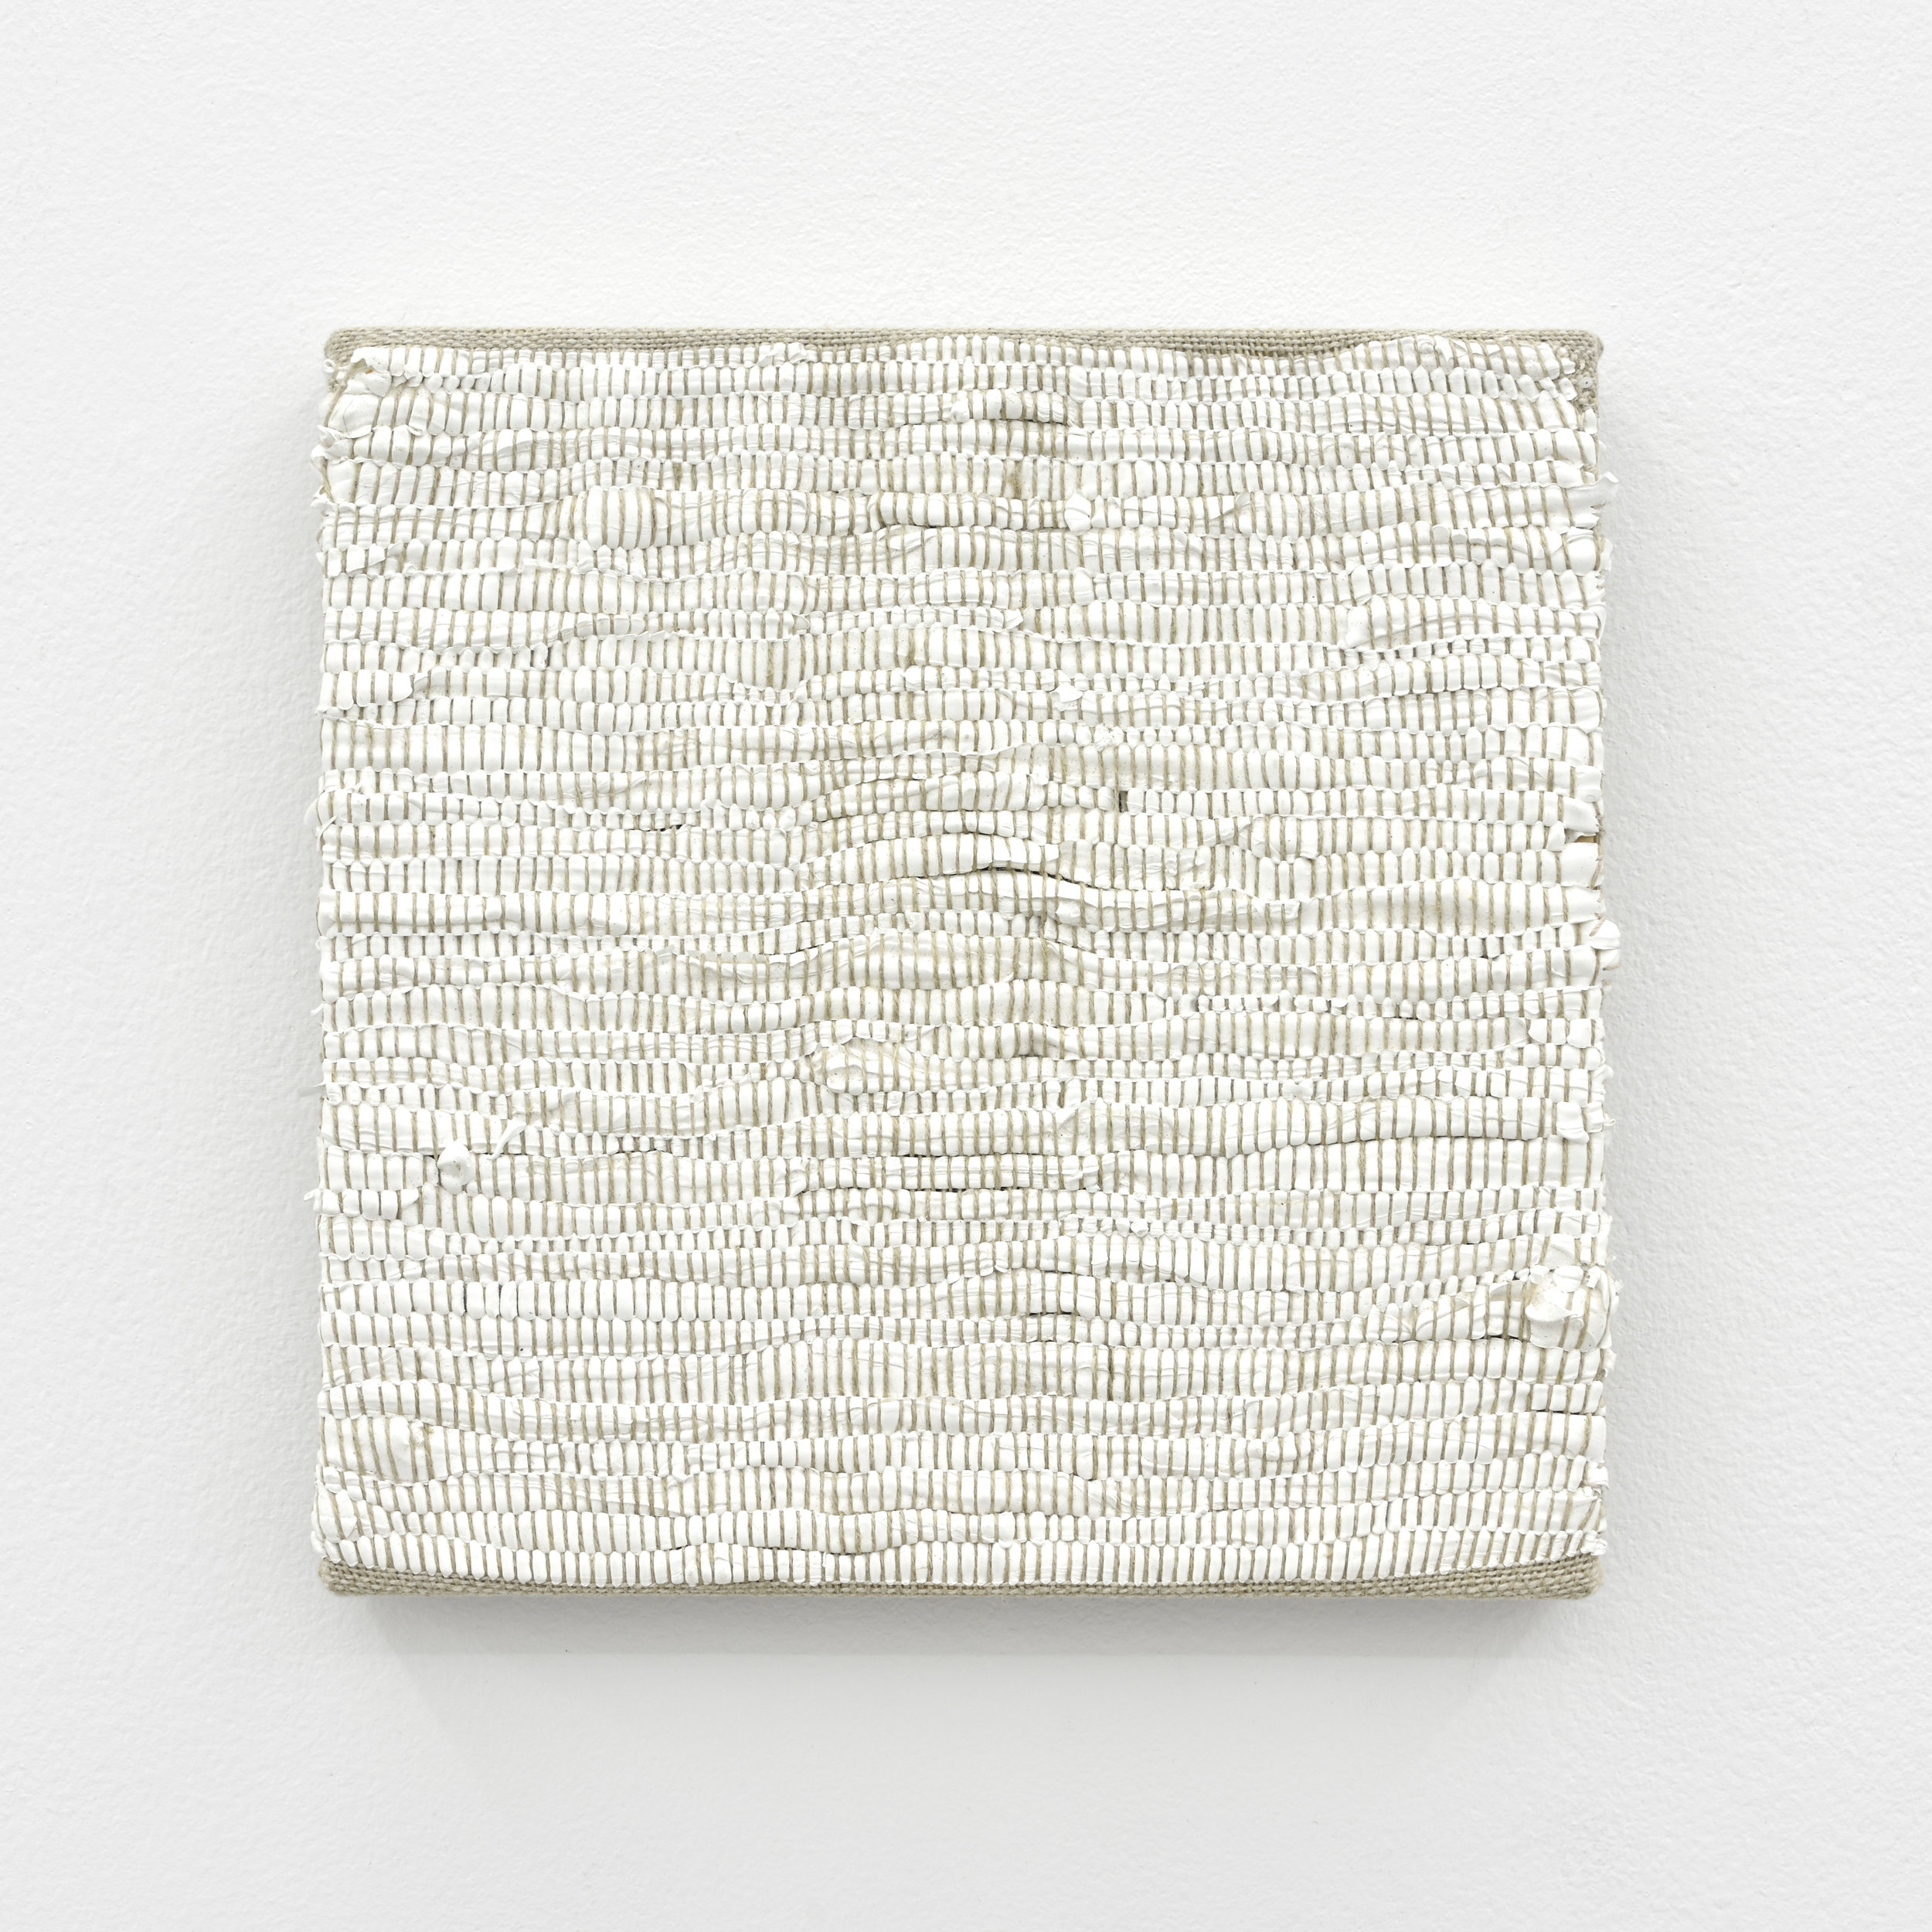 Composition for Woven Solid (White), 2017 acrylic paint woven through linen 20 x 20 x 2 cm - 7 7/8 x 7 7/8 x 0 3/4 inches